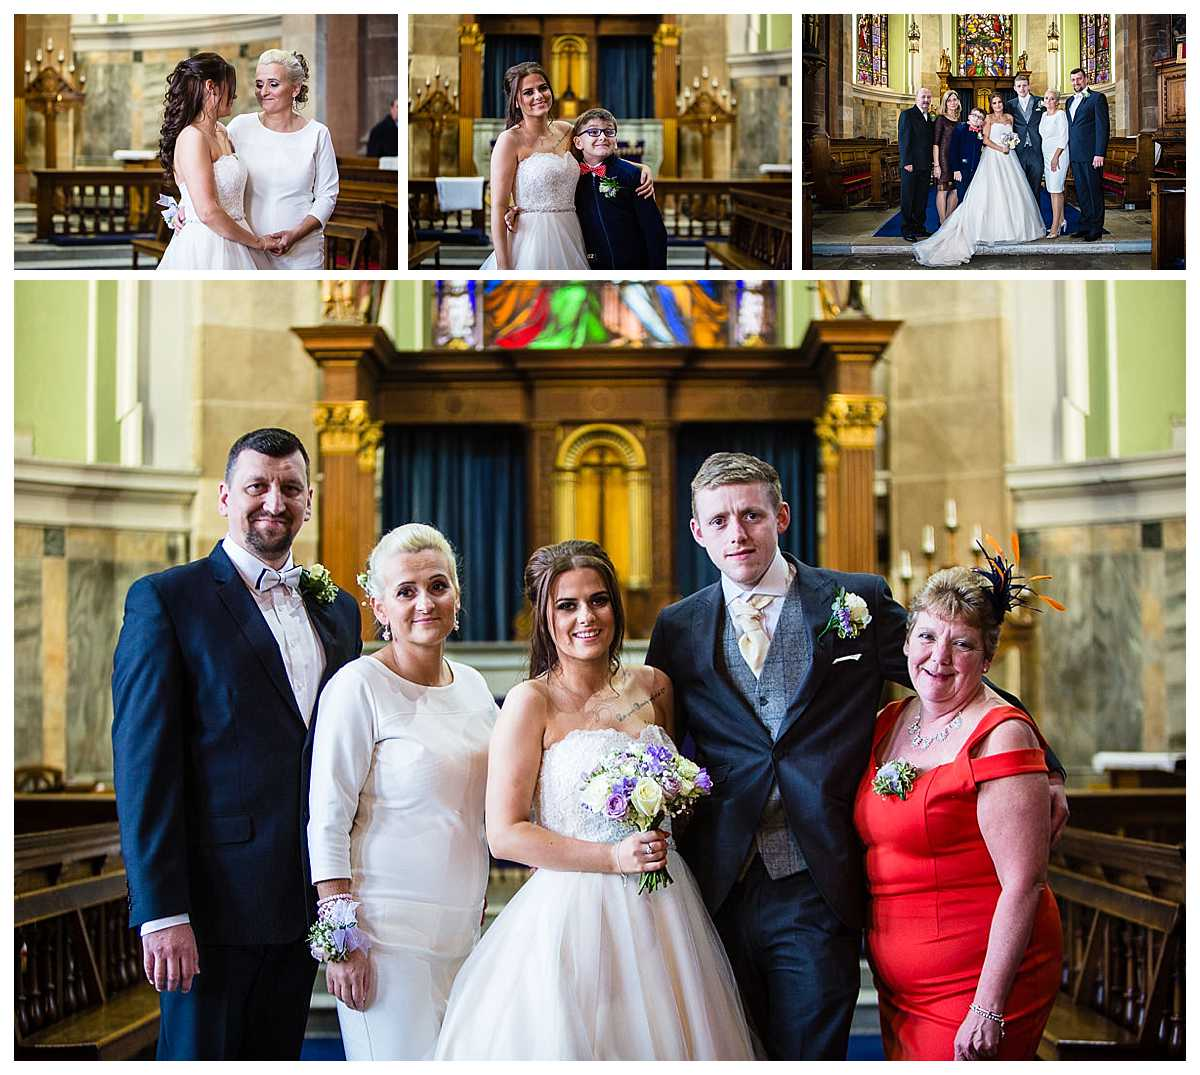 family photos taken inside st alkmunds church due to change in the weather and looking like it will rain - whitchurch shropshire wedding